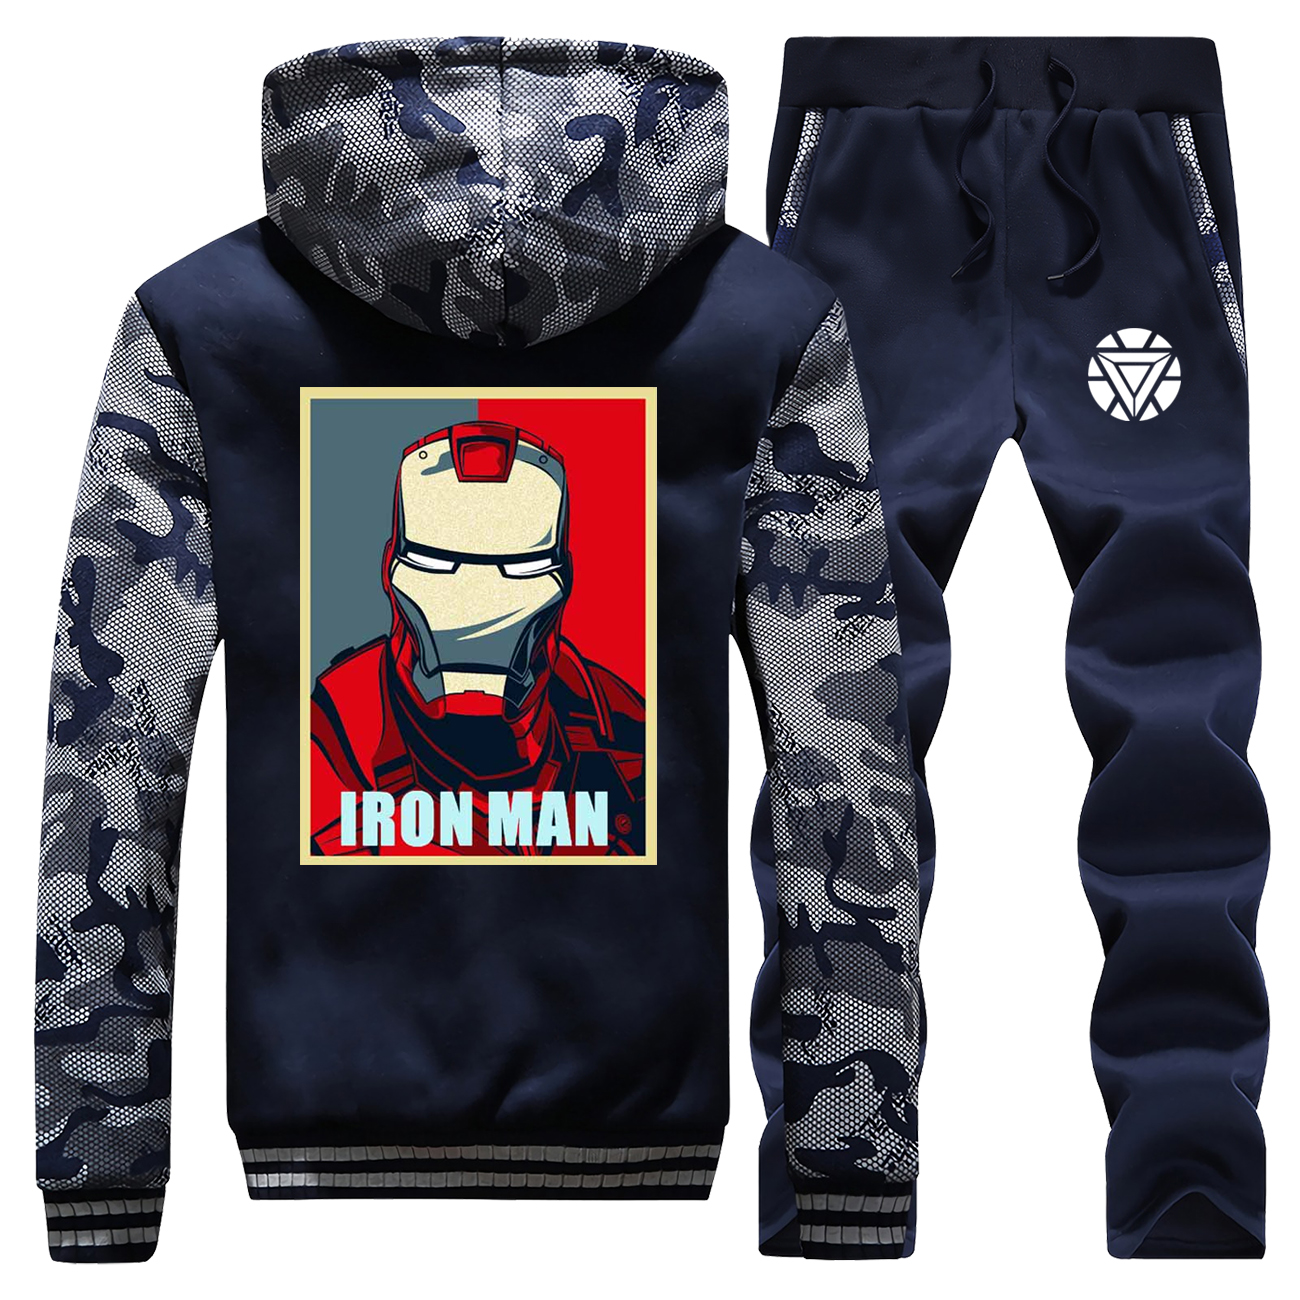 The Avengers Superhero Tracksuit Iron Jacket Pant Set Men Man Sportsuit Men Tony Stark Sweatpant Suit 2 PCS Camo Coat Sportswear